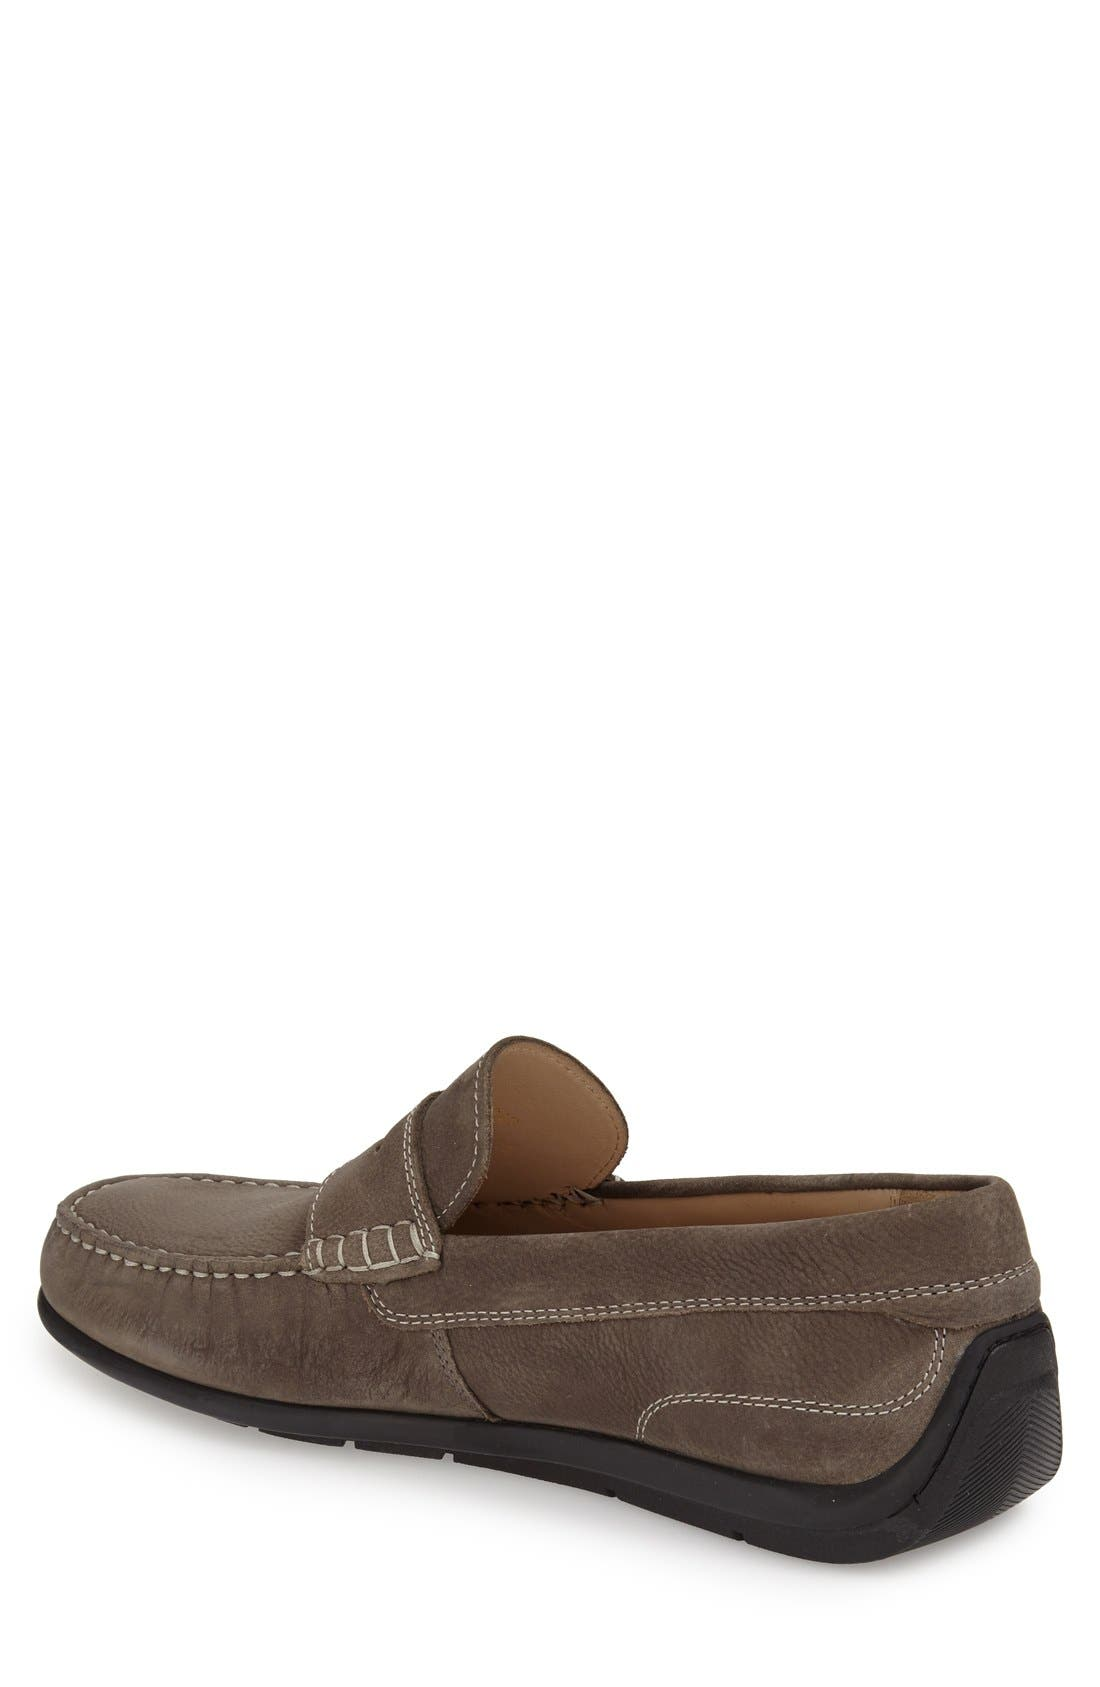 'Classic Moc 2.0' Penny Loafer,                             Alternate thumbnail 16, color,